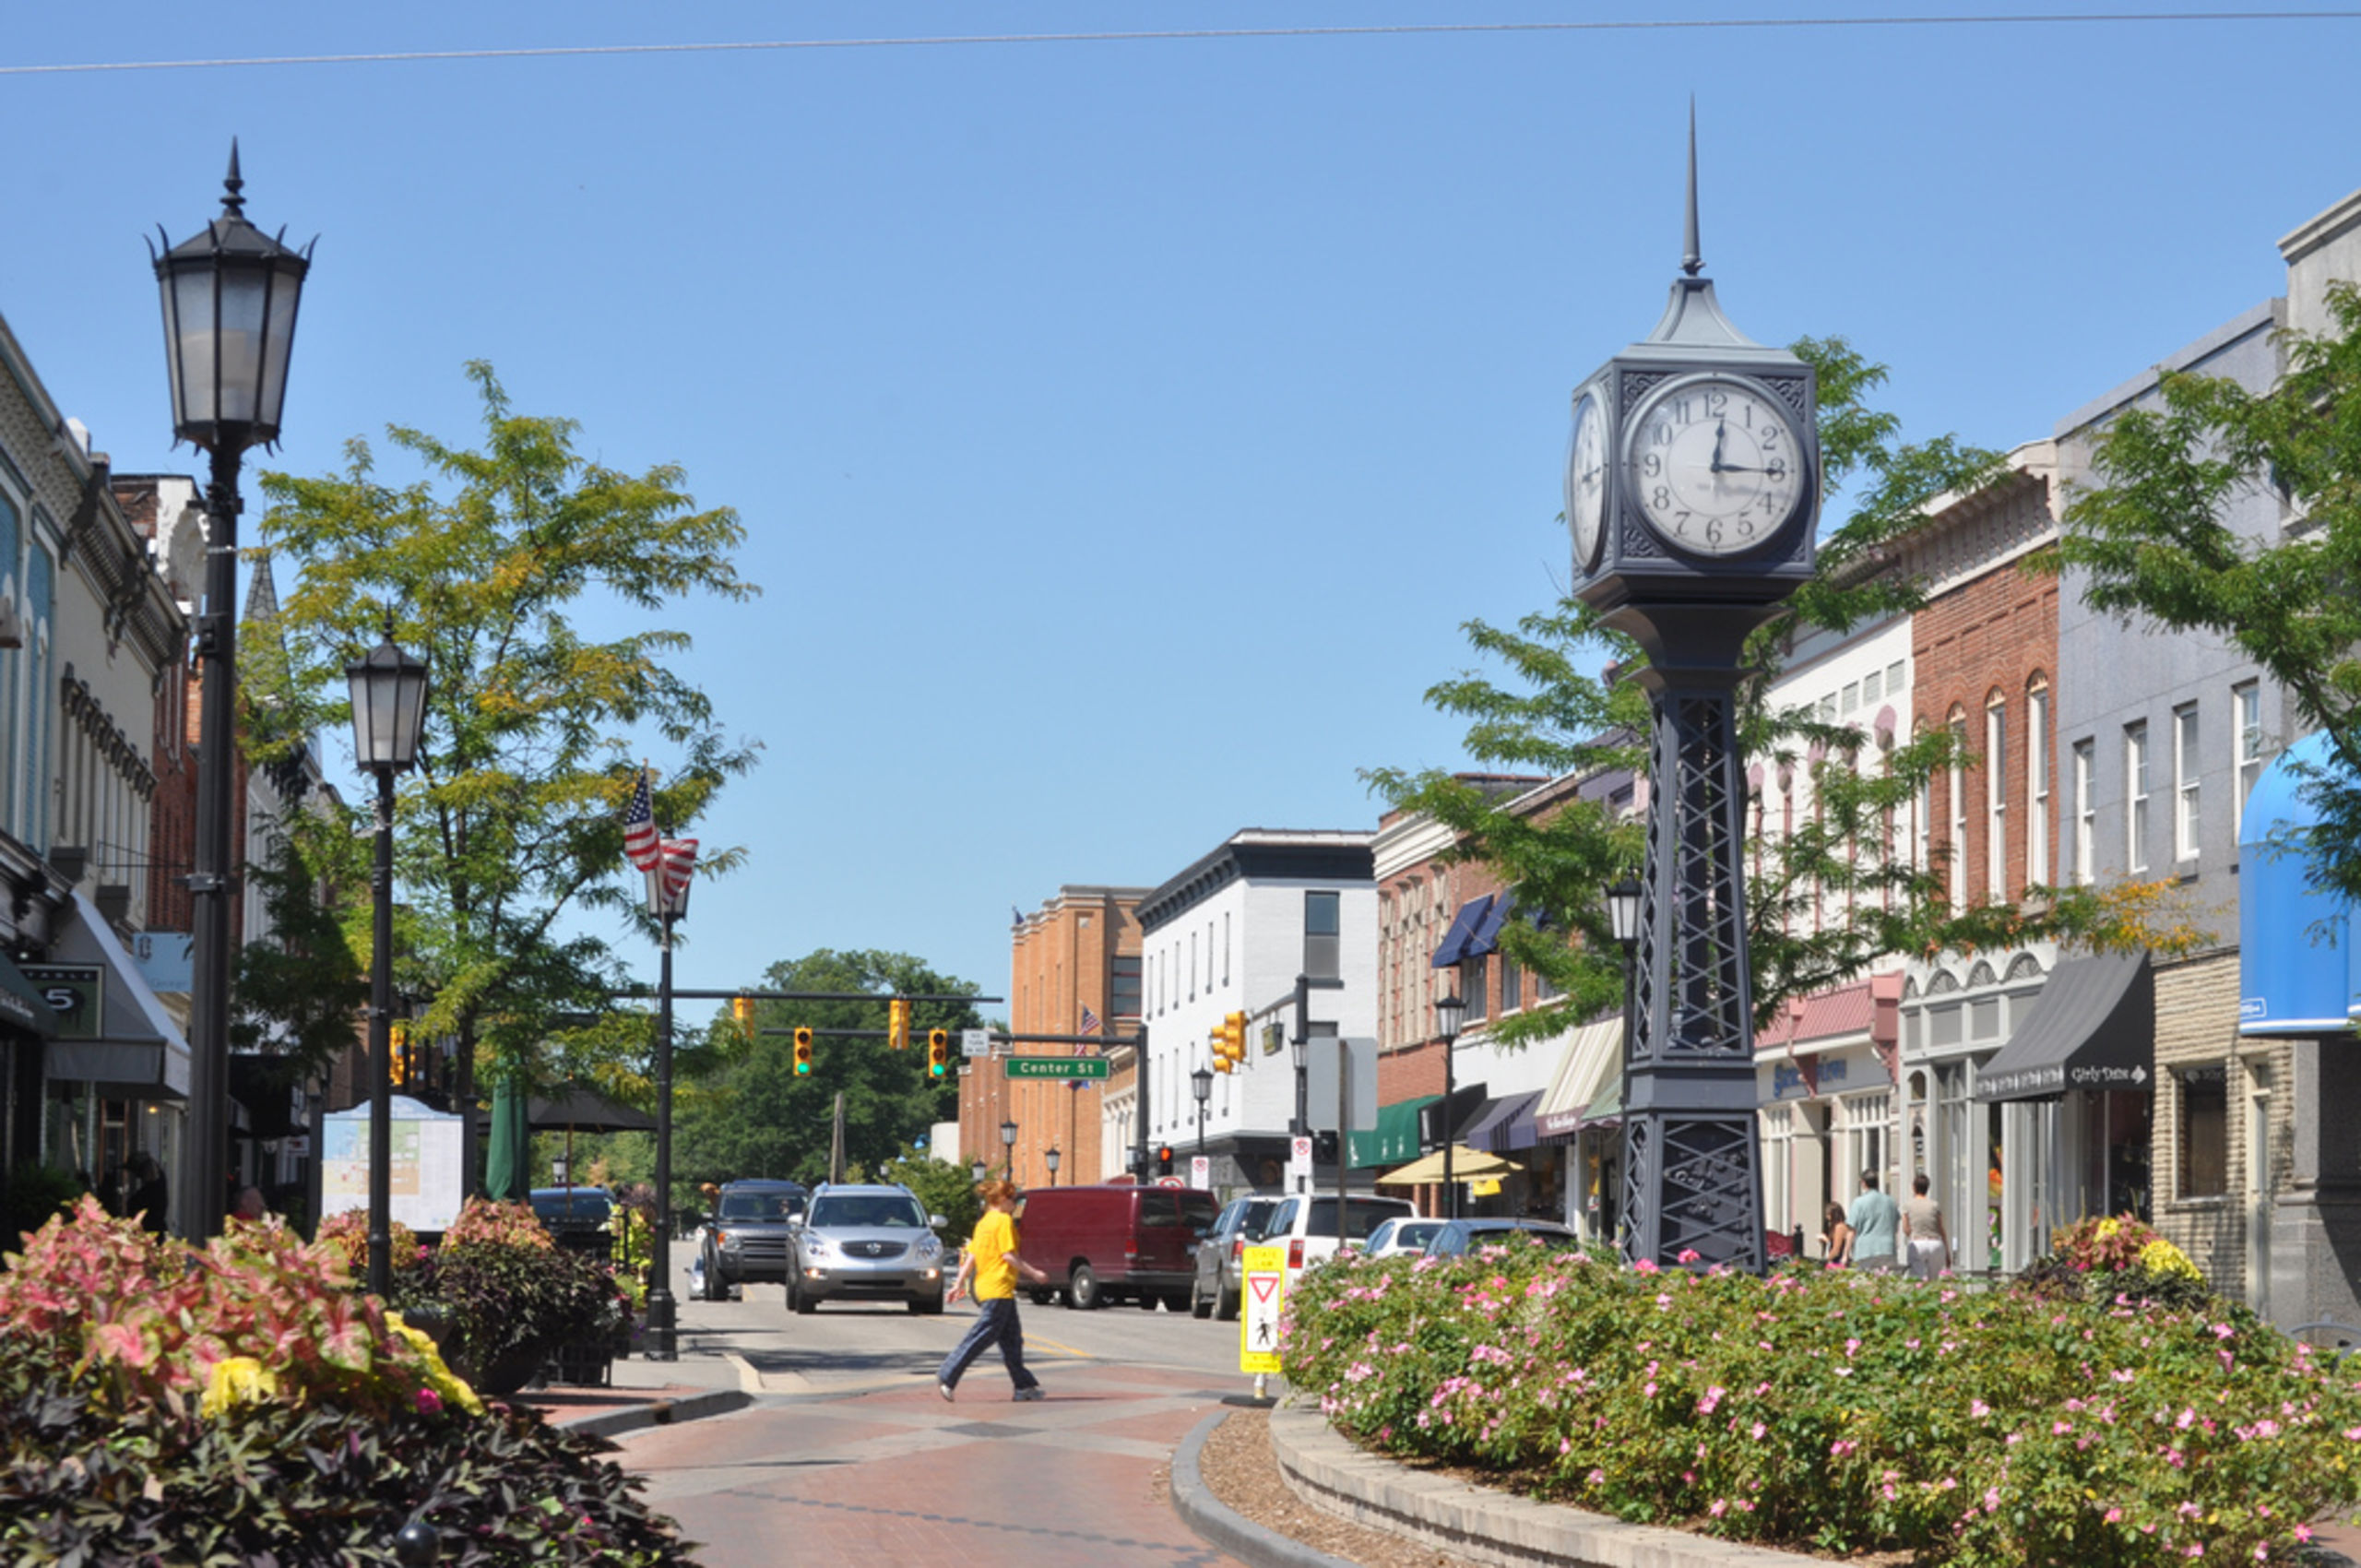 Visit Downtown Northville for great food, shopping and entertainment.